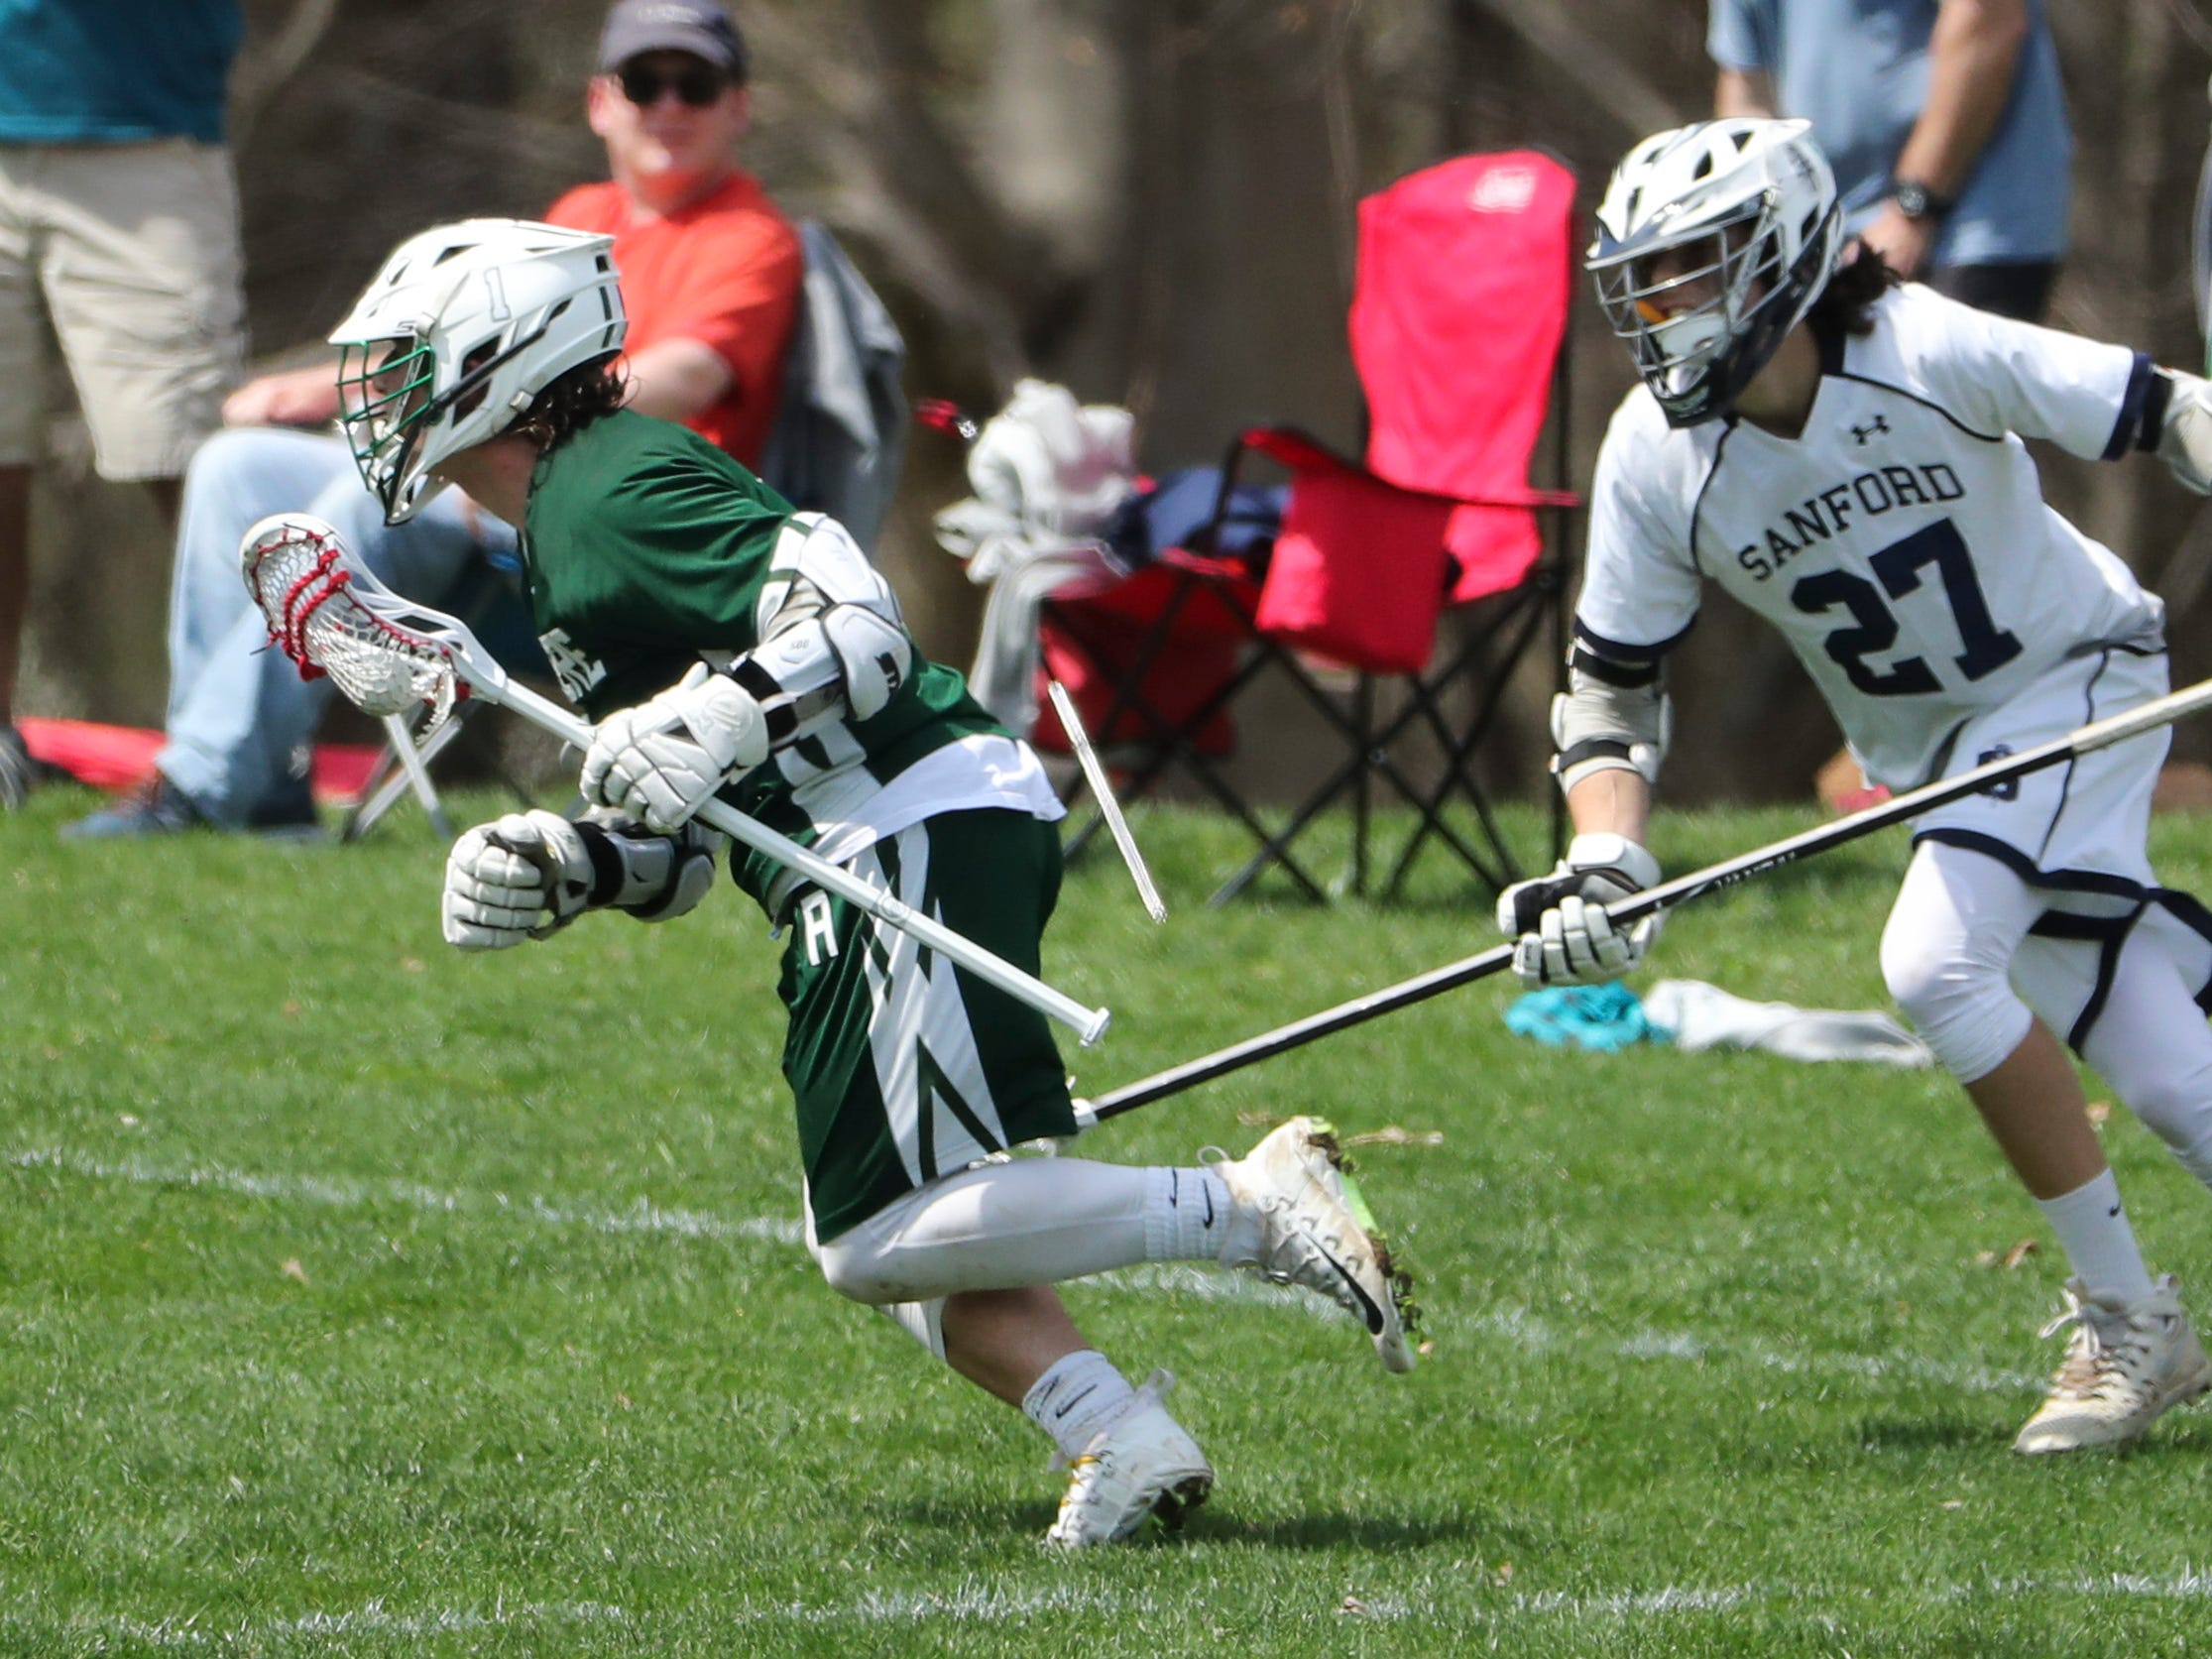 Archmere's Cole Bauer gets ahead of Sanford's Nathan LaMonte in the second half of Sanford's 12-10 win Saturday.